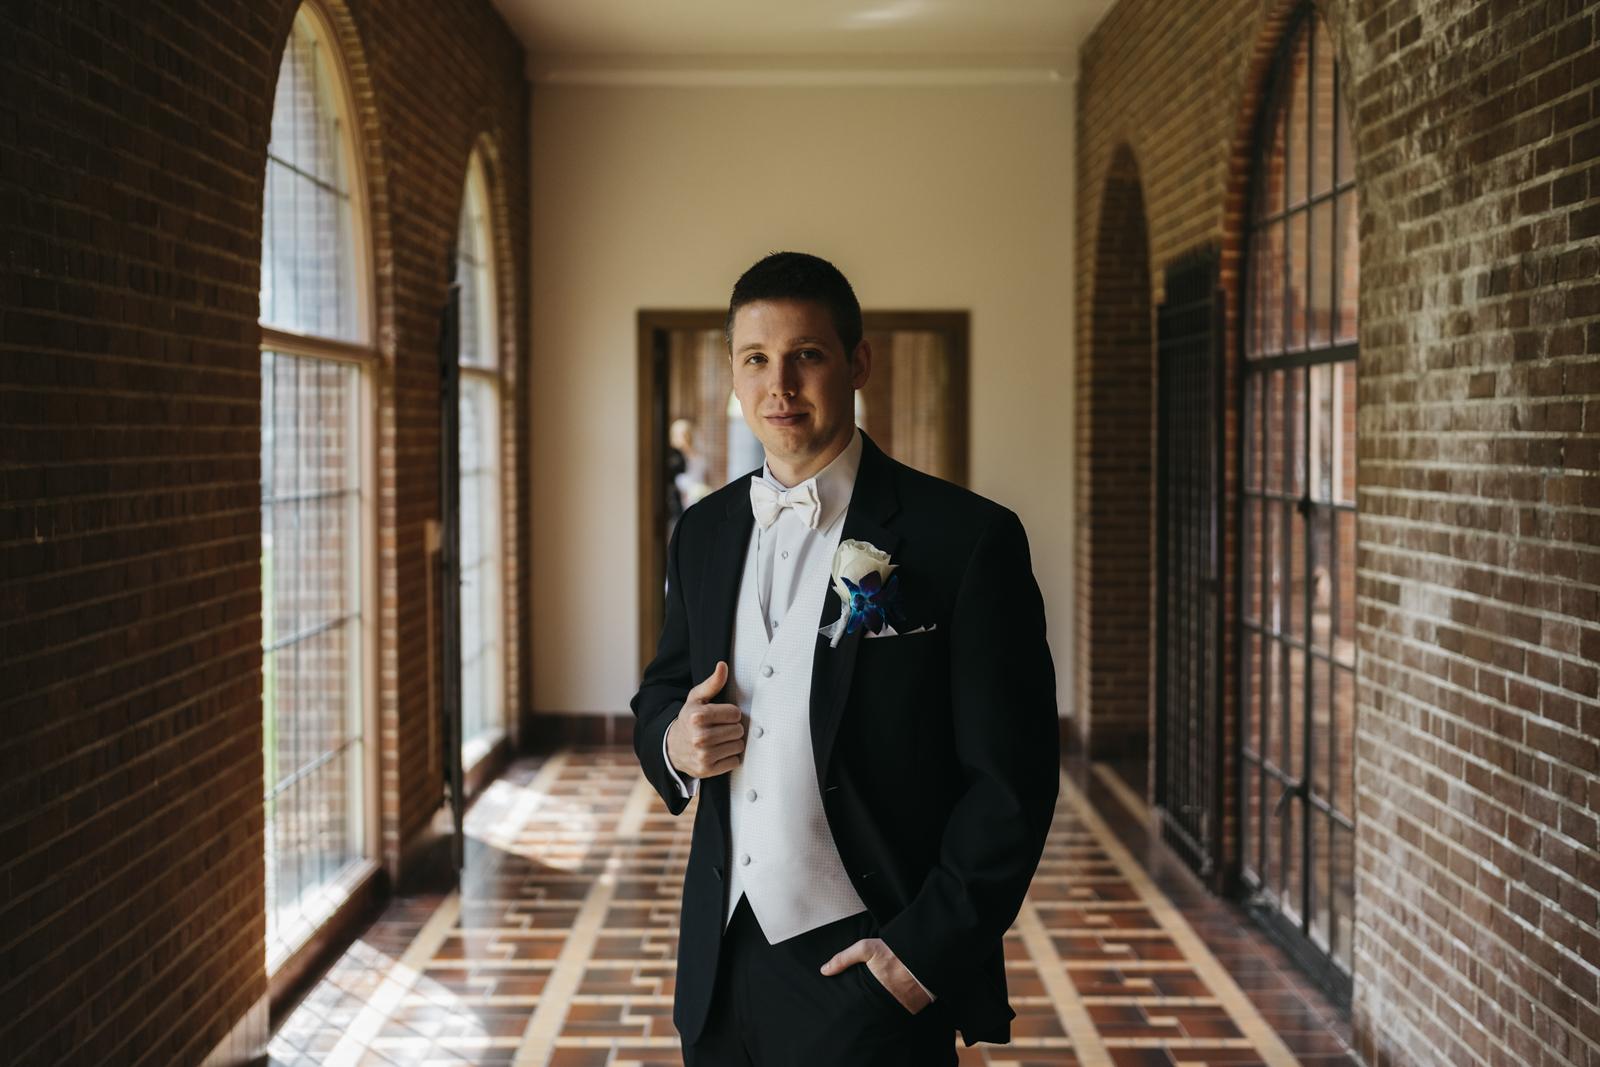 Wedding photography of groom on wedding day in Plymouth, Michigan.